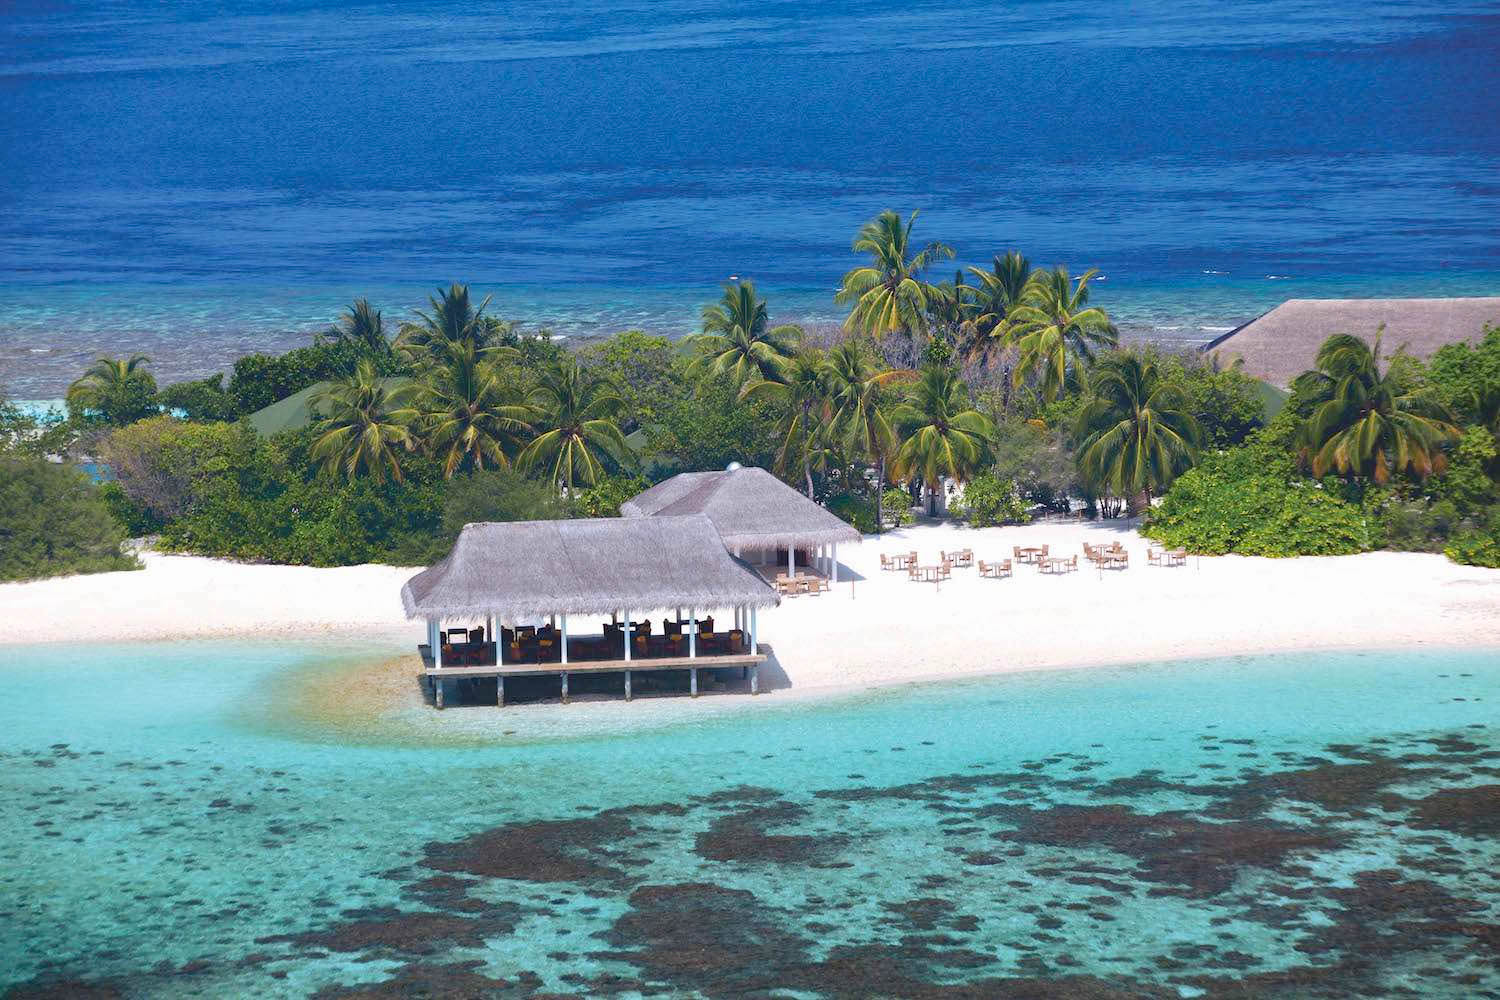 maldives-oblu-by-atmosphere-at-helengeli-just-grill-aerial-view-holiday-honeymoon-vacation-invite-to-paradise.jpg